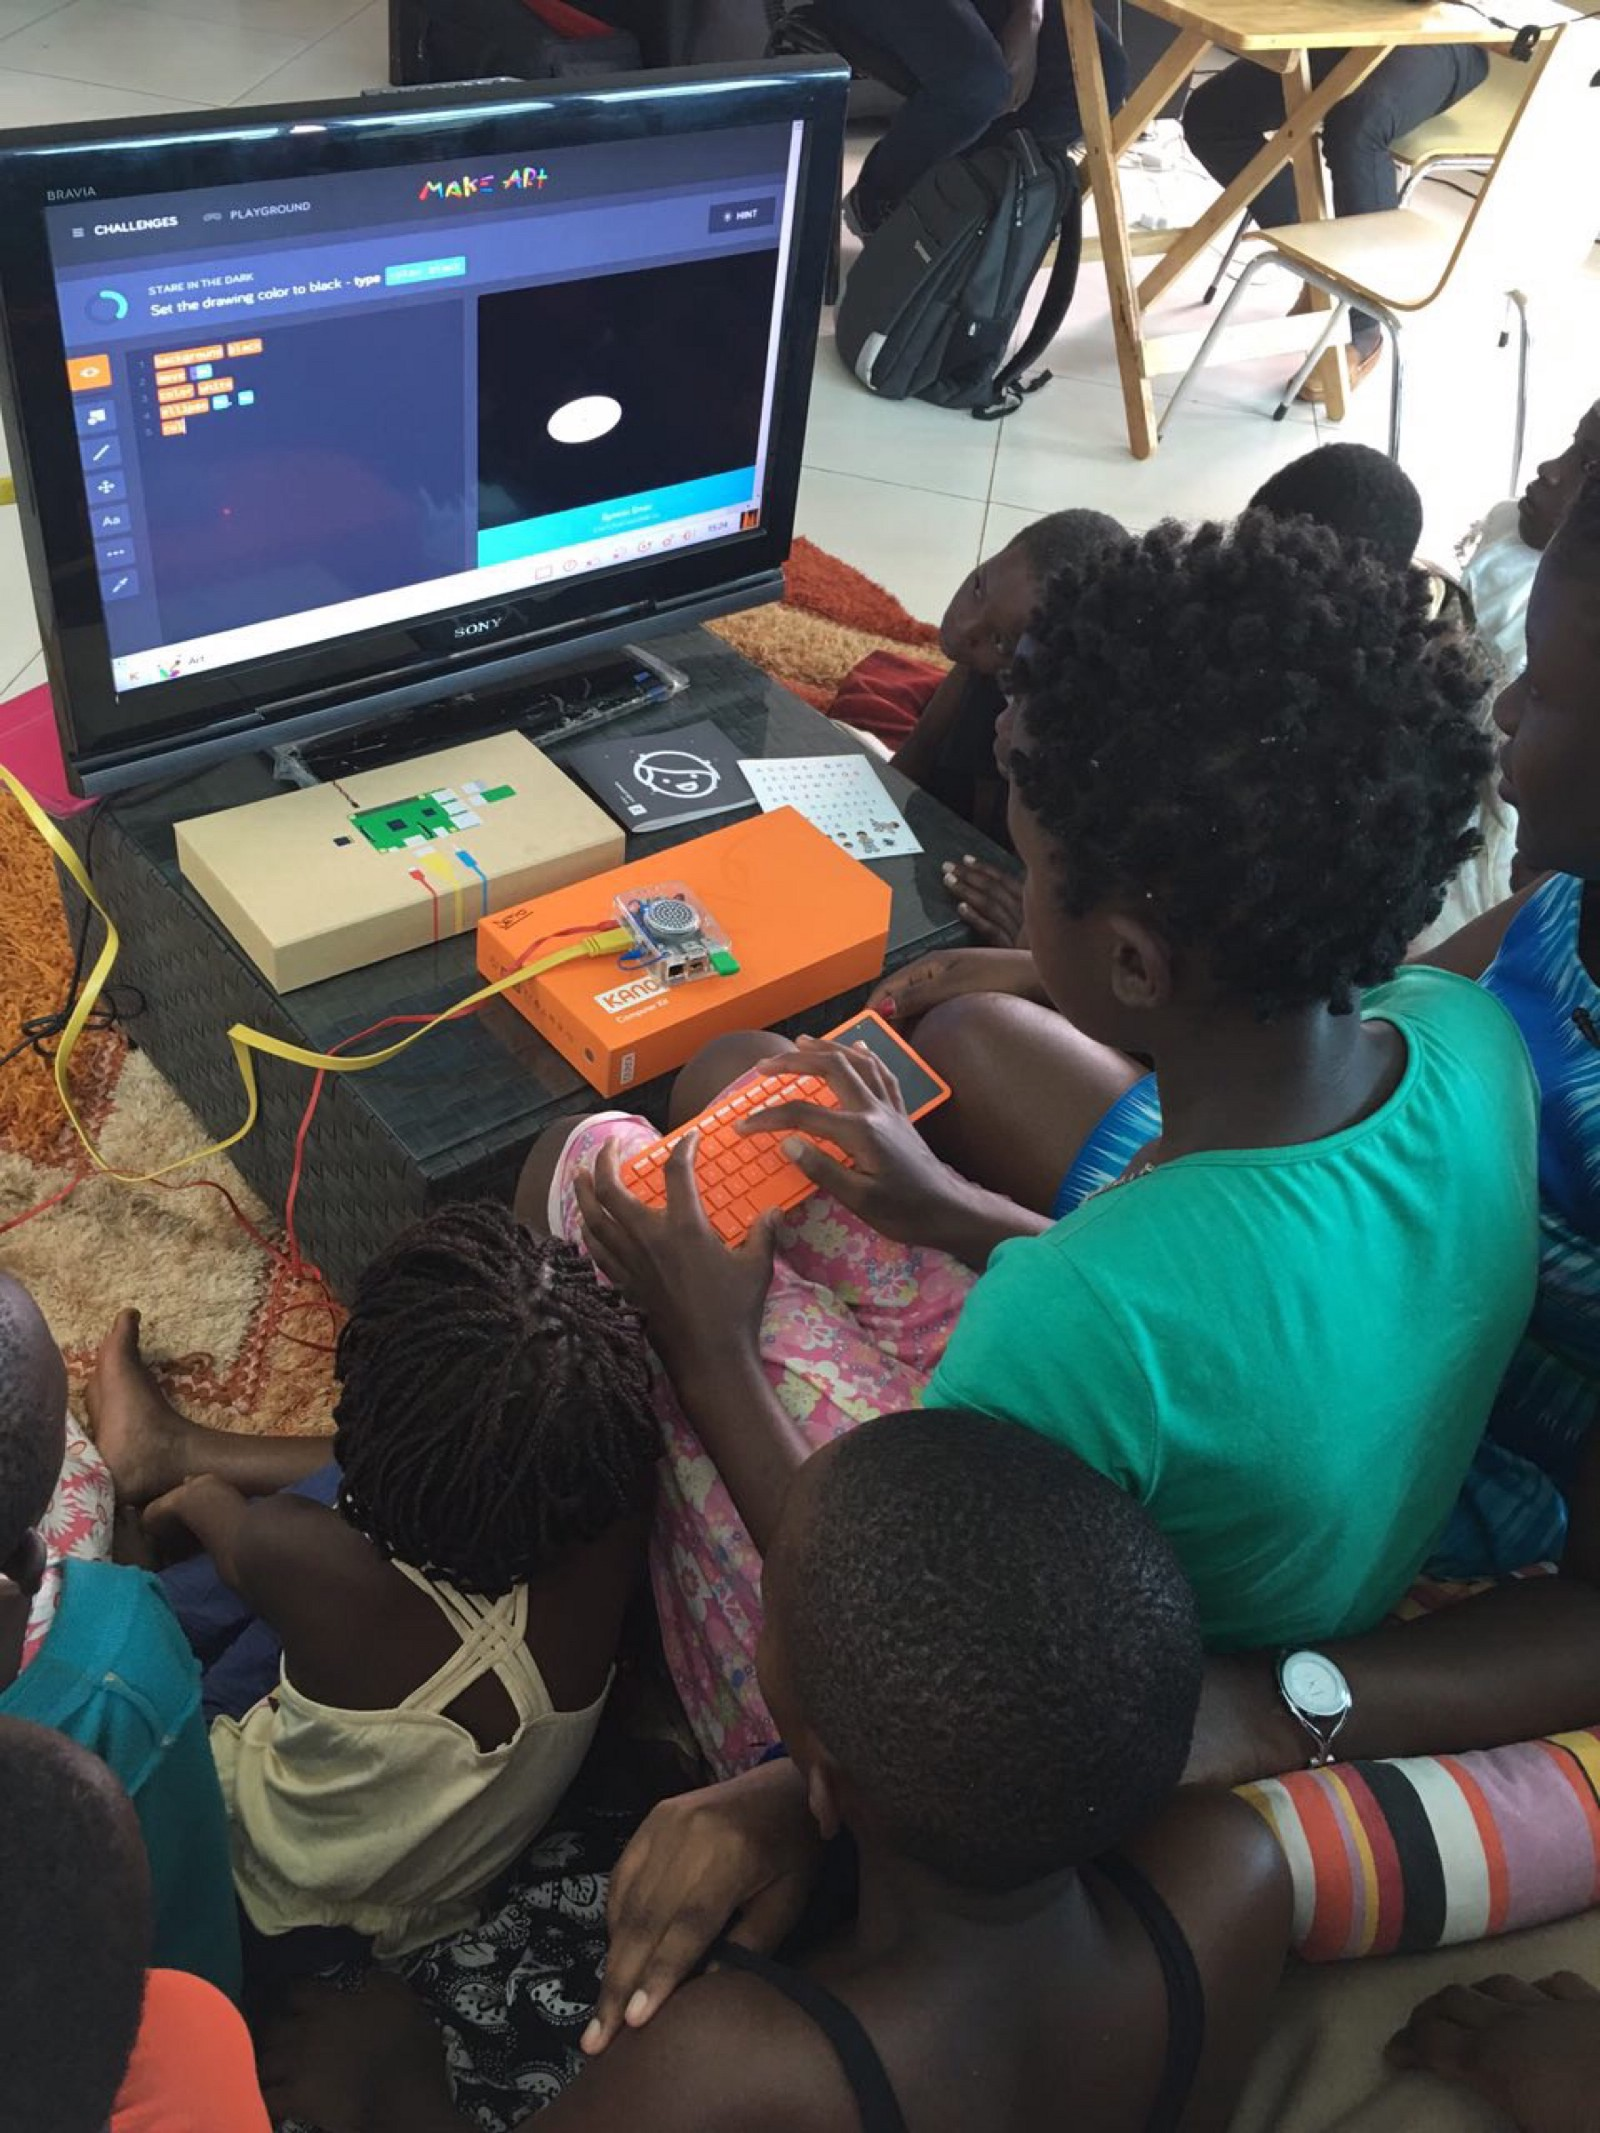 3 Computer Kits By Kano For Girls In Africa Marieme Jamme Medium We Have A New As Look Into How To Make Technology Accessible All The Dyi Will Play Massive Role Lives Of Like Laetitia Living Uganda